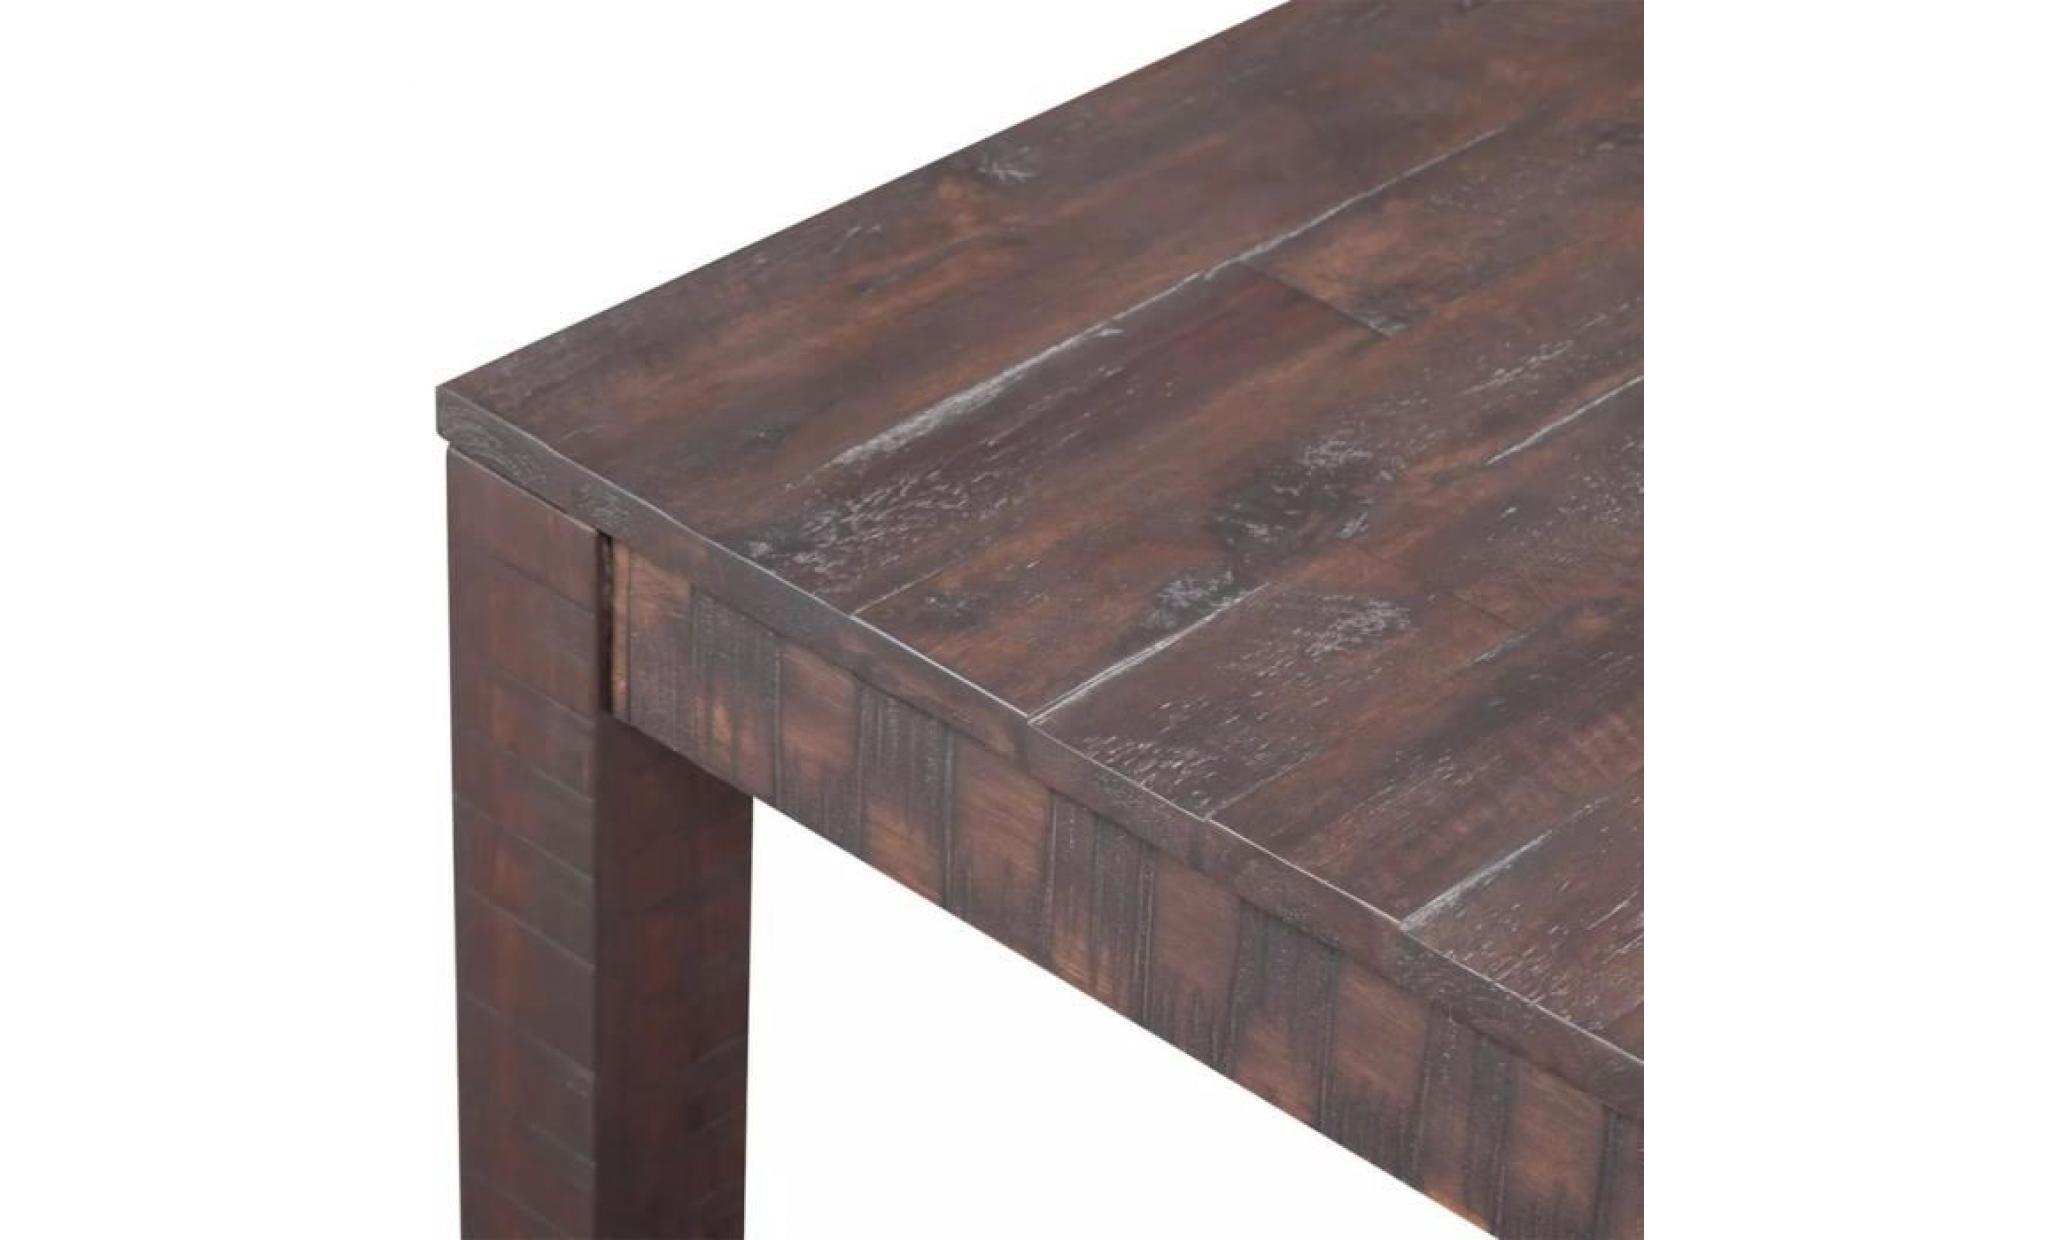 De Aspect Salon Cm Basse 105x55 X45 Massif Table Bois D'acacia wkilXZuOPT